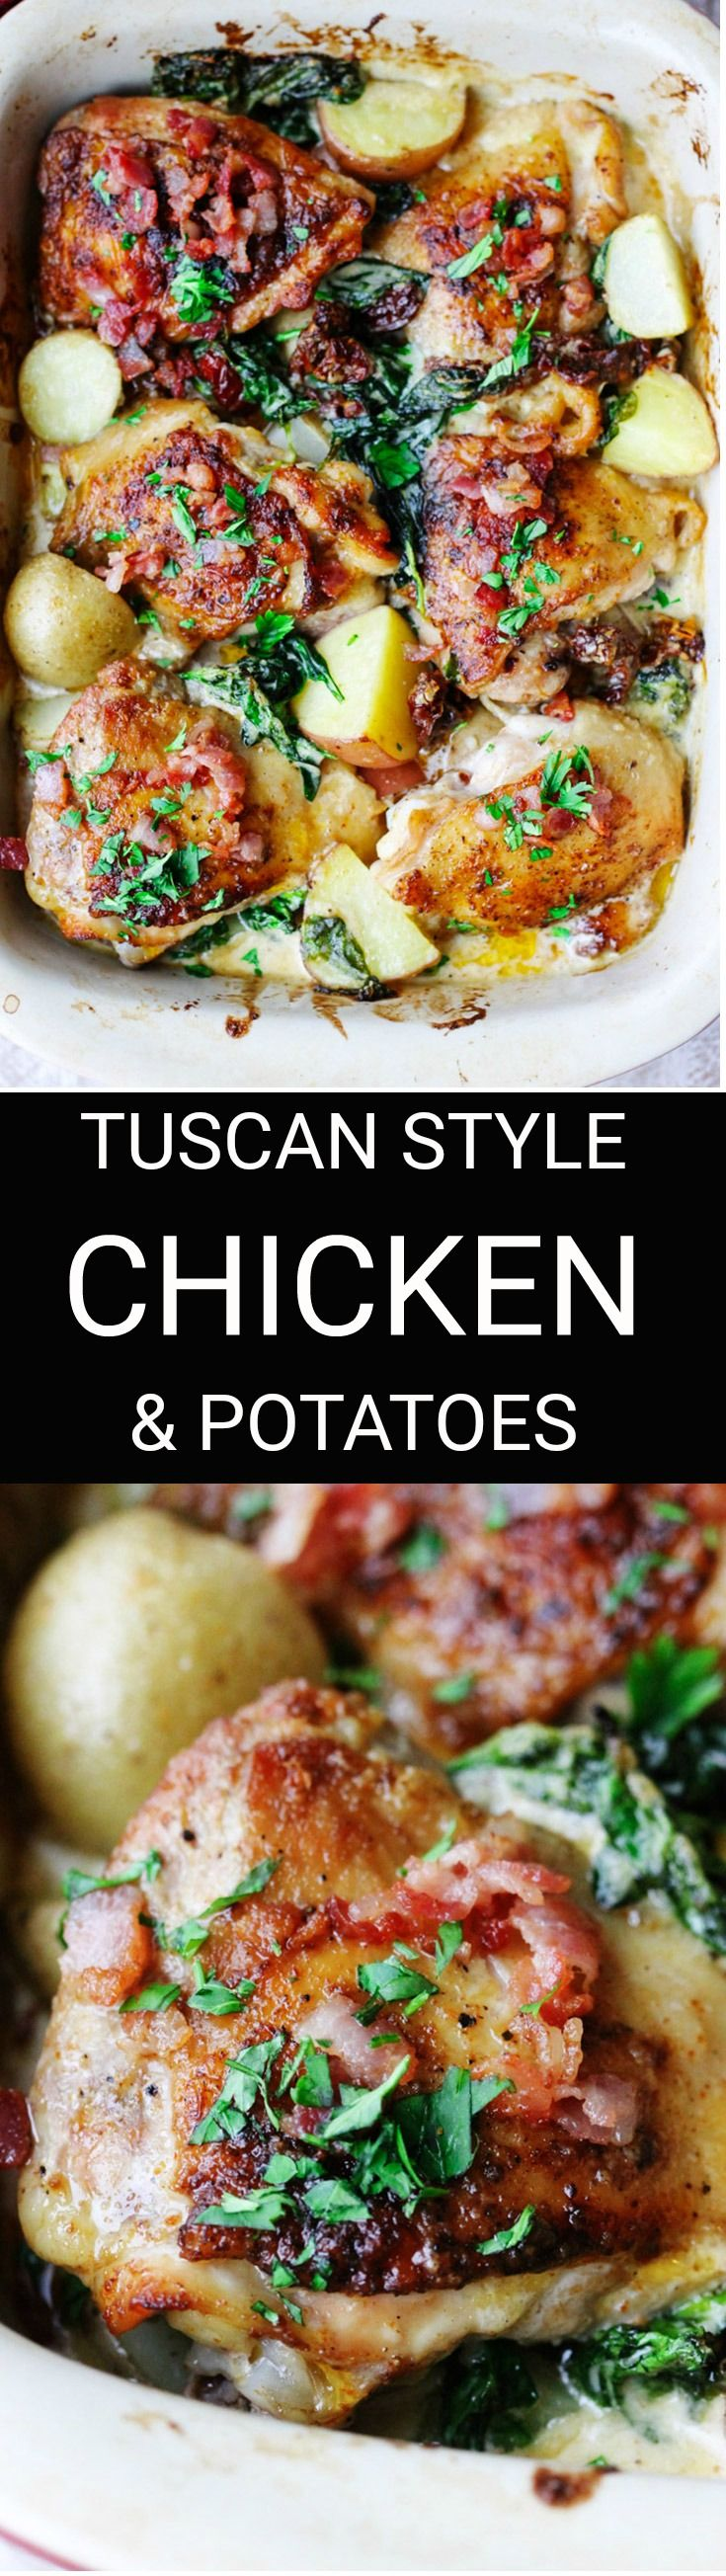 Tuscan Style Chicken and Potatoes is an extremely satisfying dish. Crispy chicken and potatoes with spinach, sun dried tomatoes and bacon bits, all smothered in a creamy Parmesan sauce. Doesn't that sound amazing? #chicken #tuscanchicken #parmesan #parmesangarlic #sundriedtomatoes #creamsauce #potatoes #dinner